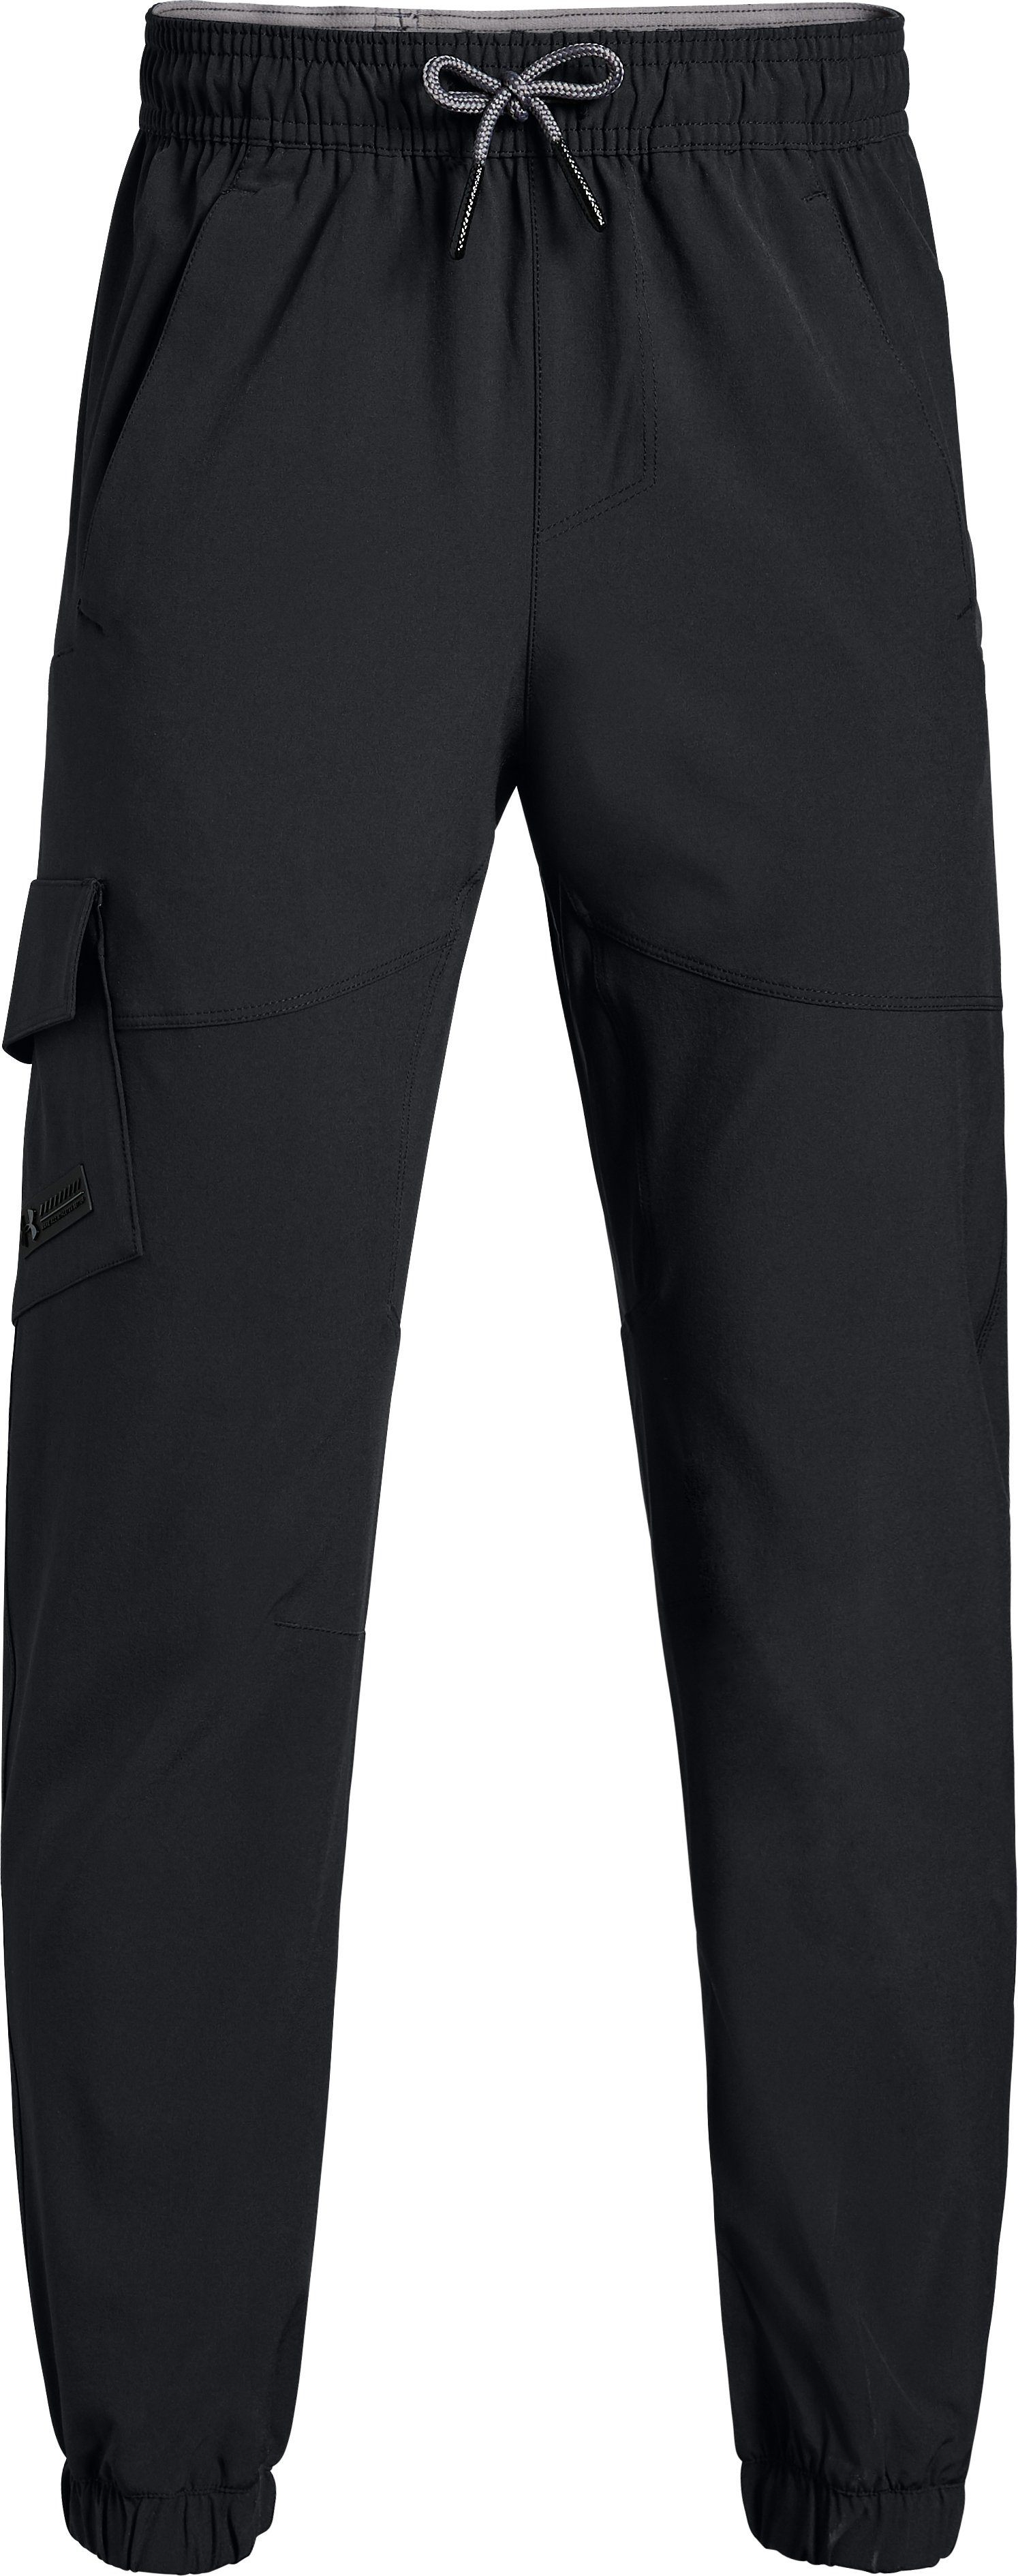 black cargo pants Boys' UA X Level Cargo Pants These are a superior material....My little guy loved these....They run a little tight for Huskey, but great overall.